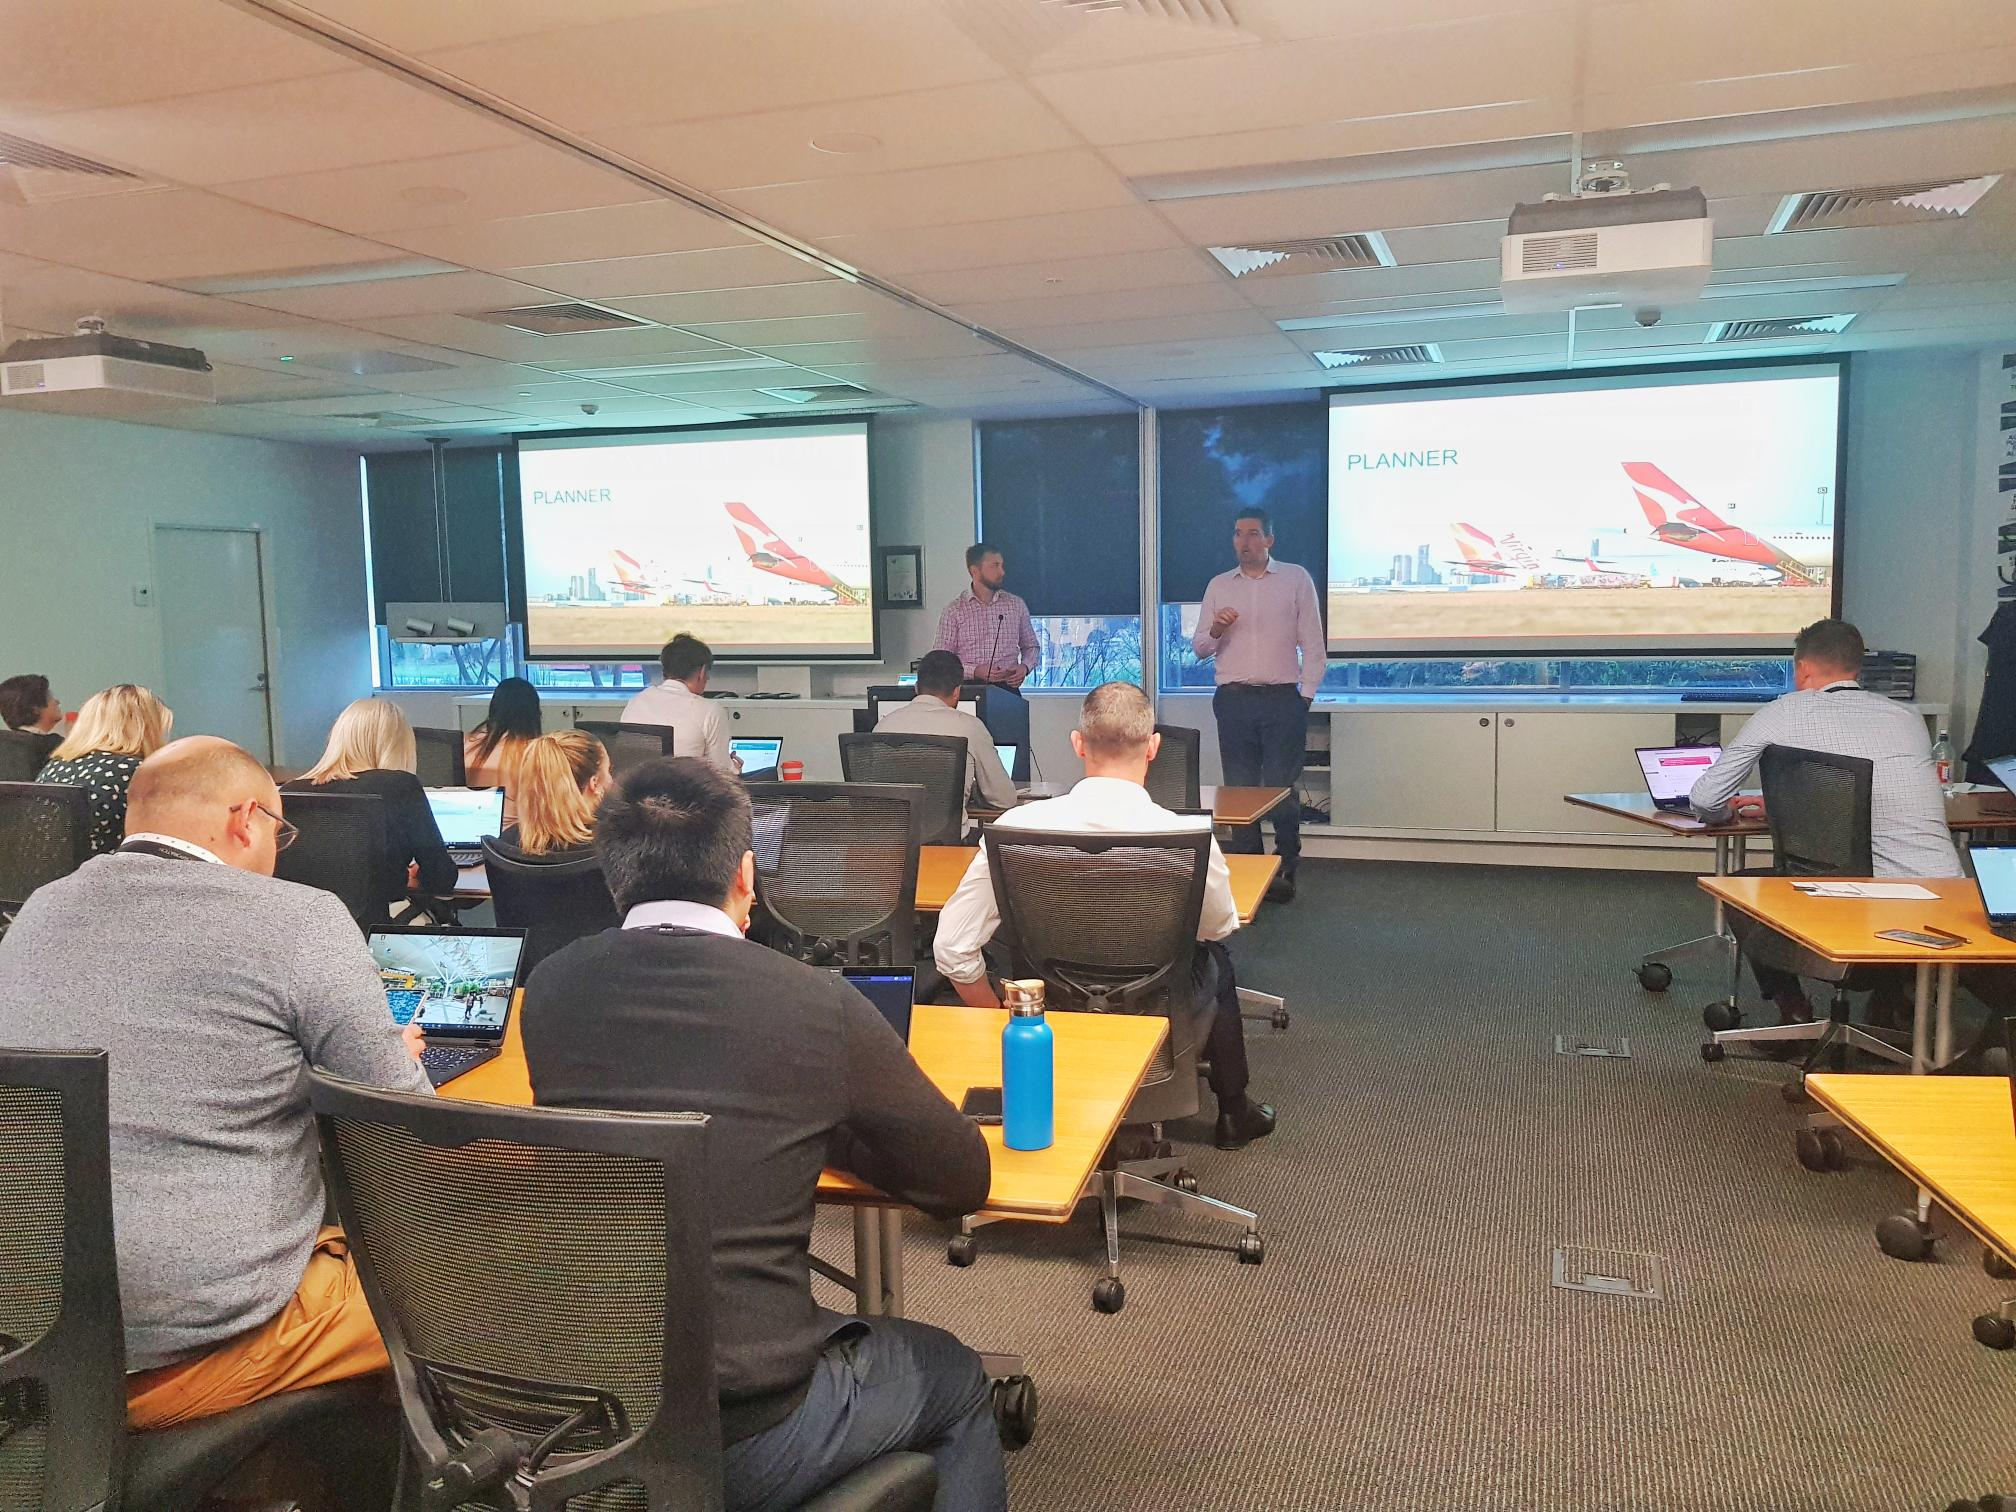 Above: Owen Huth and Ben Creamer delivering a training session to a client